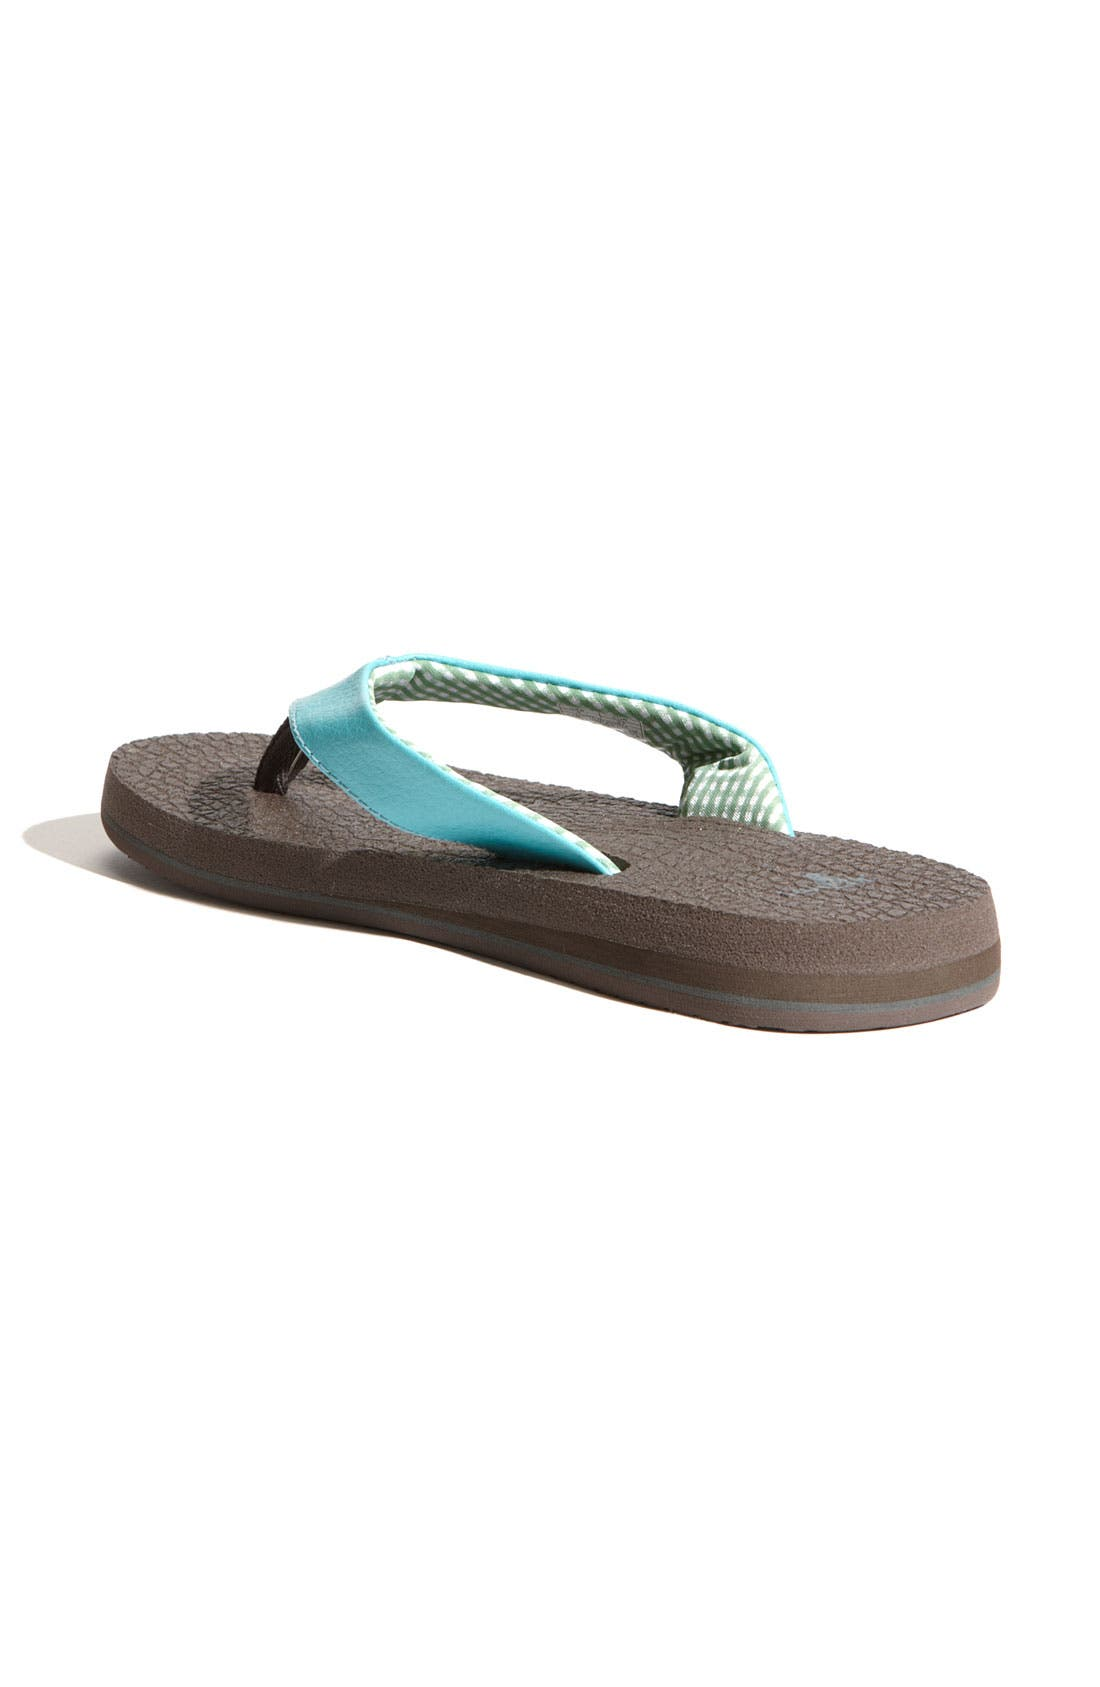 Alternate Image 2  - Sanuk 'Yoga Mat' Flip Flop (Women)